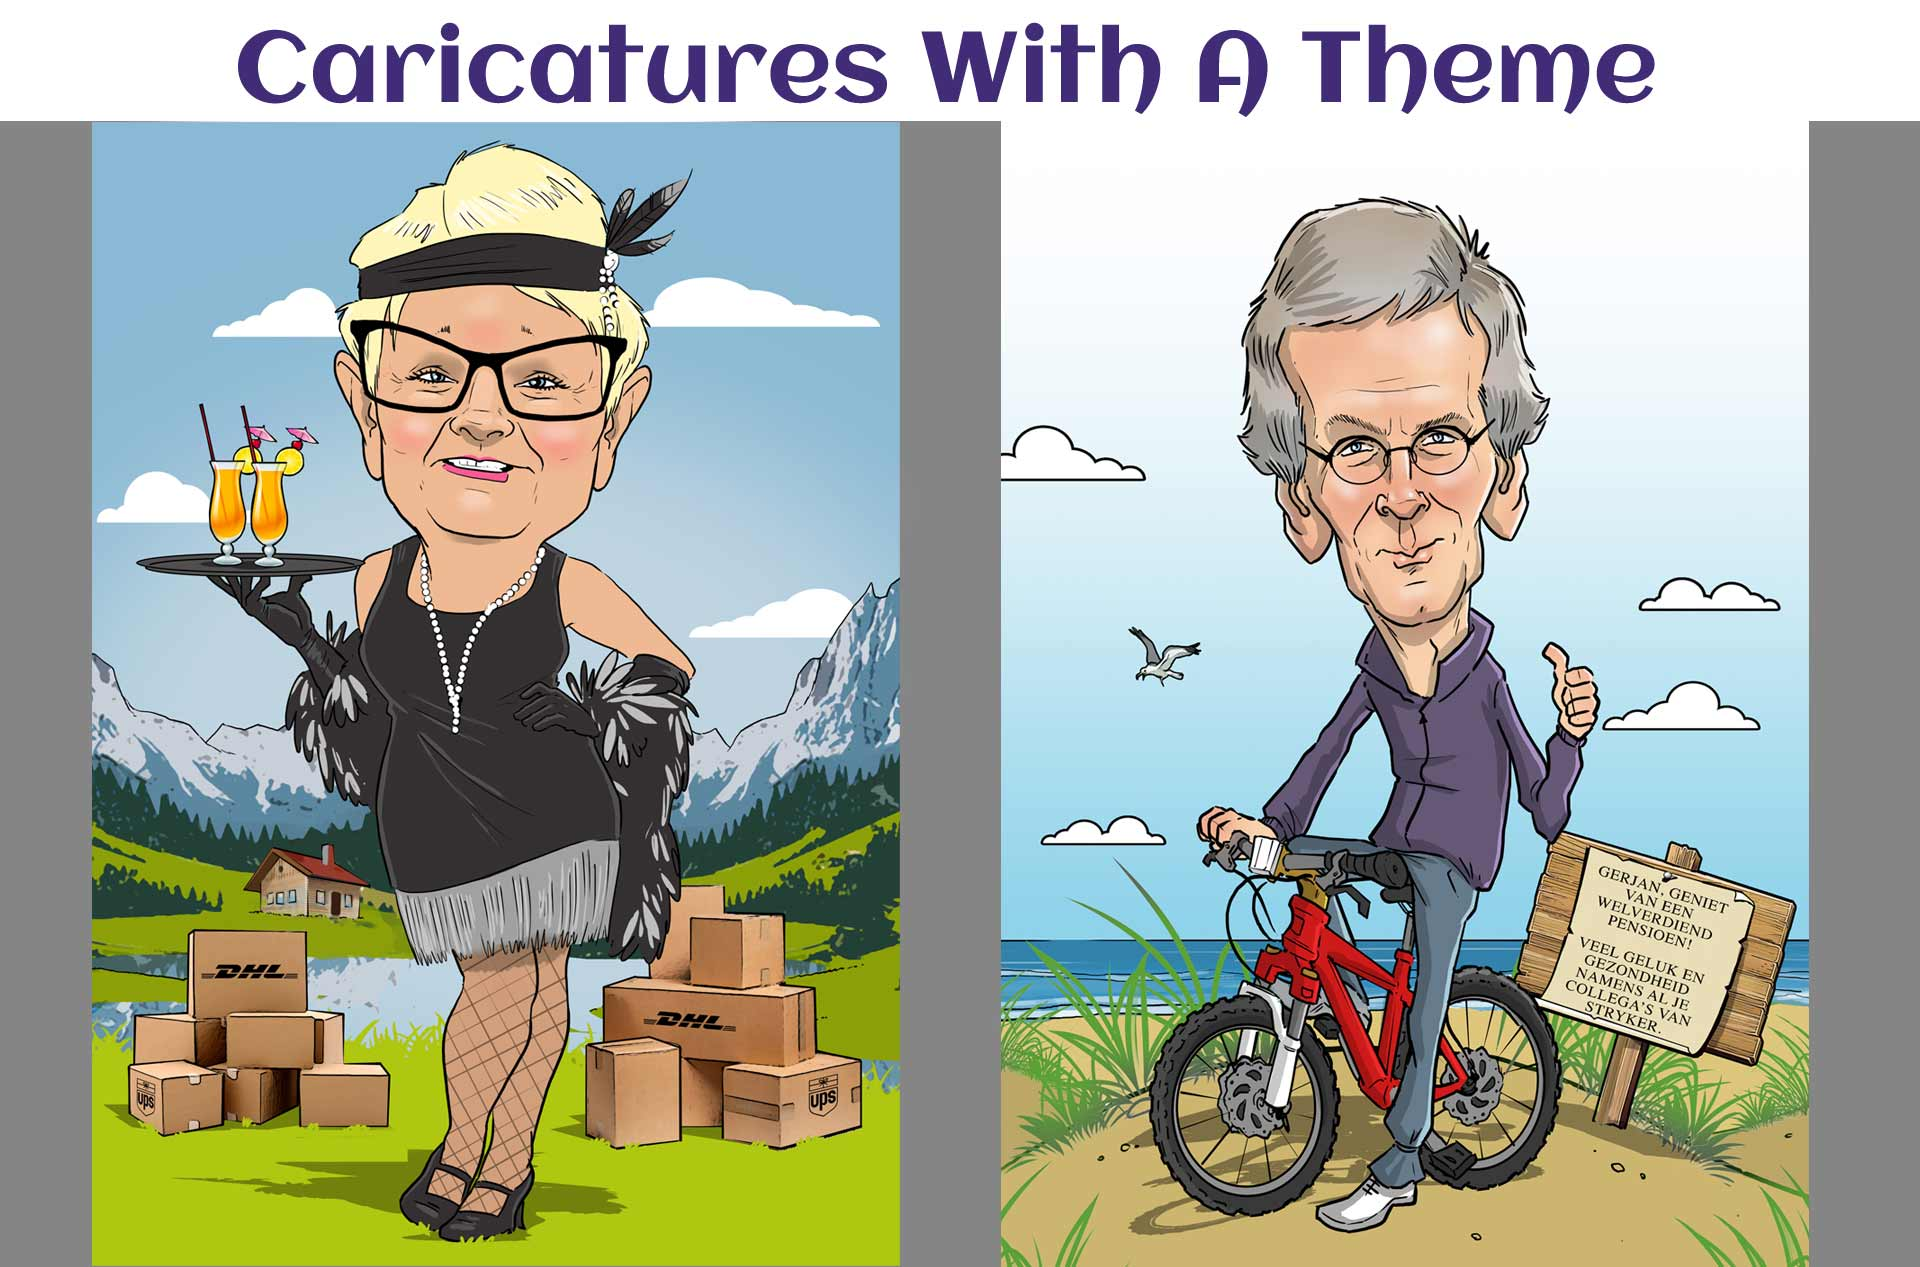 Caricatures with a theme